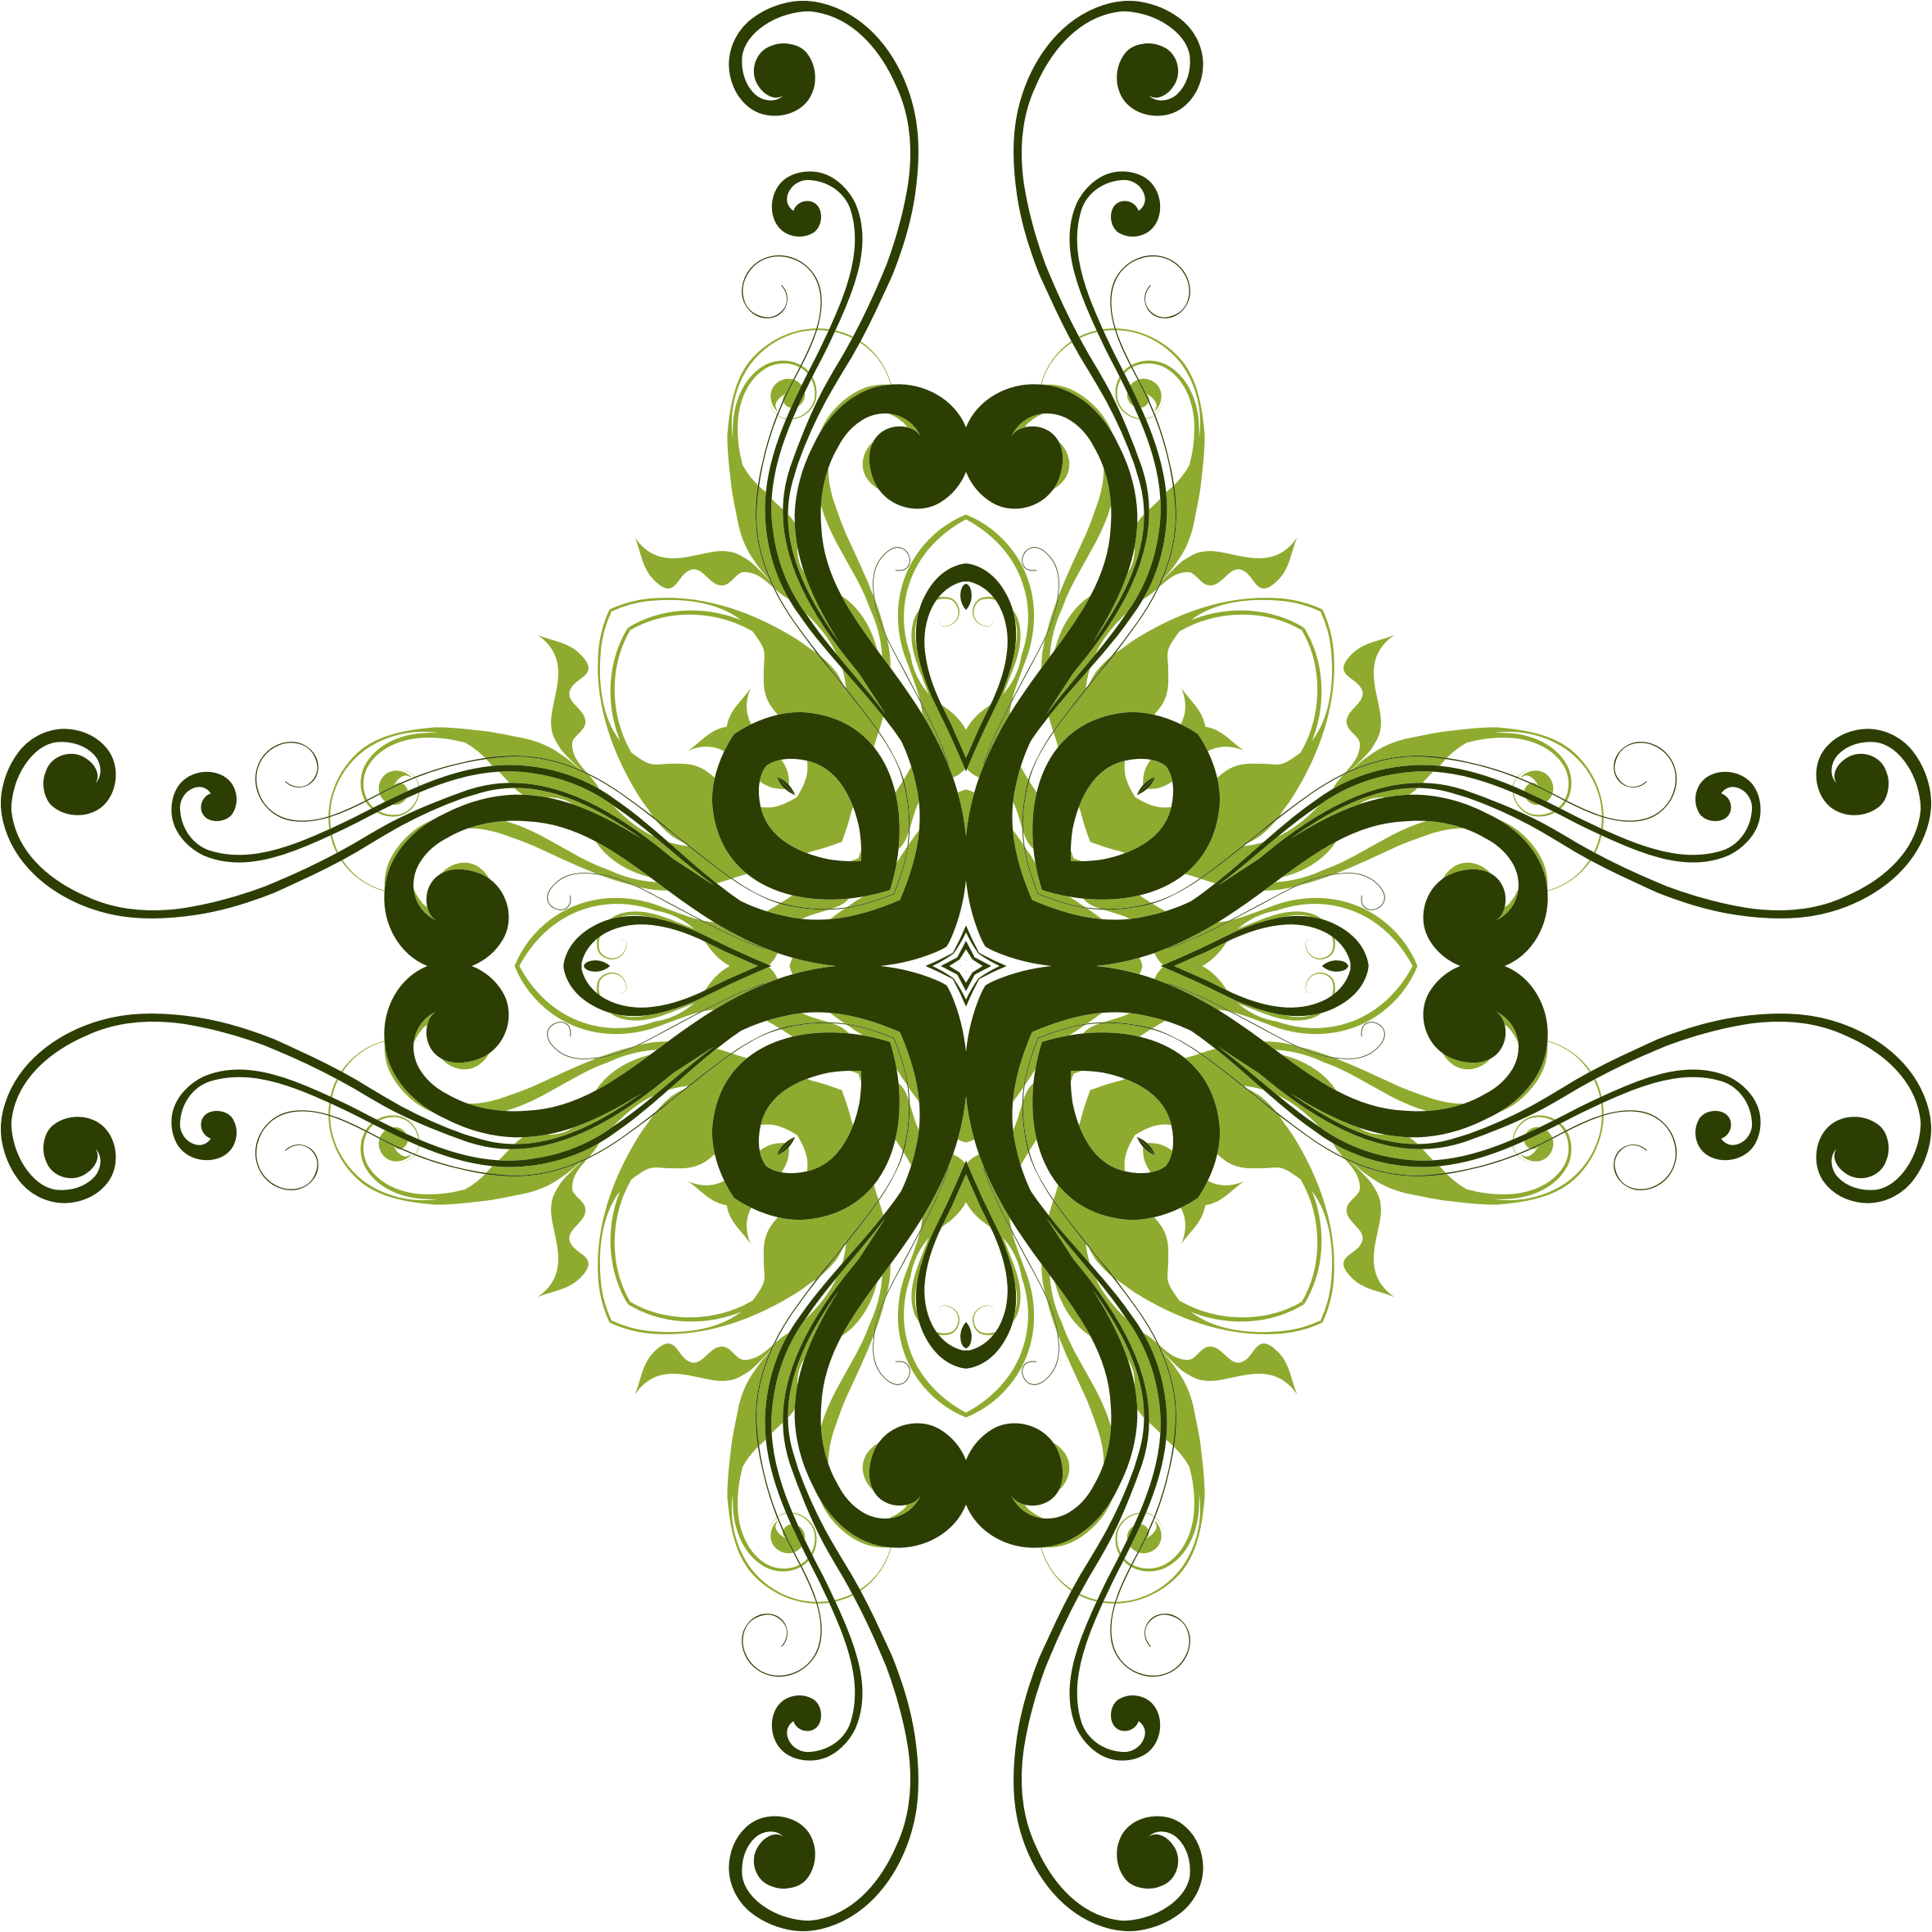 Flower flourish png. Design icons free and